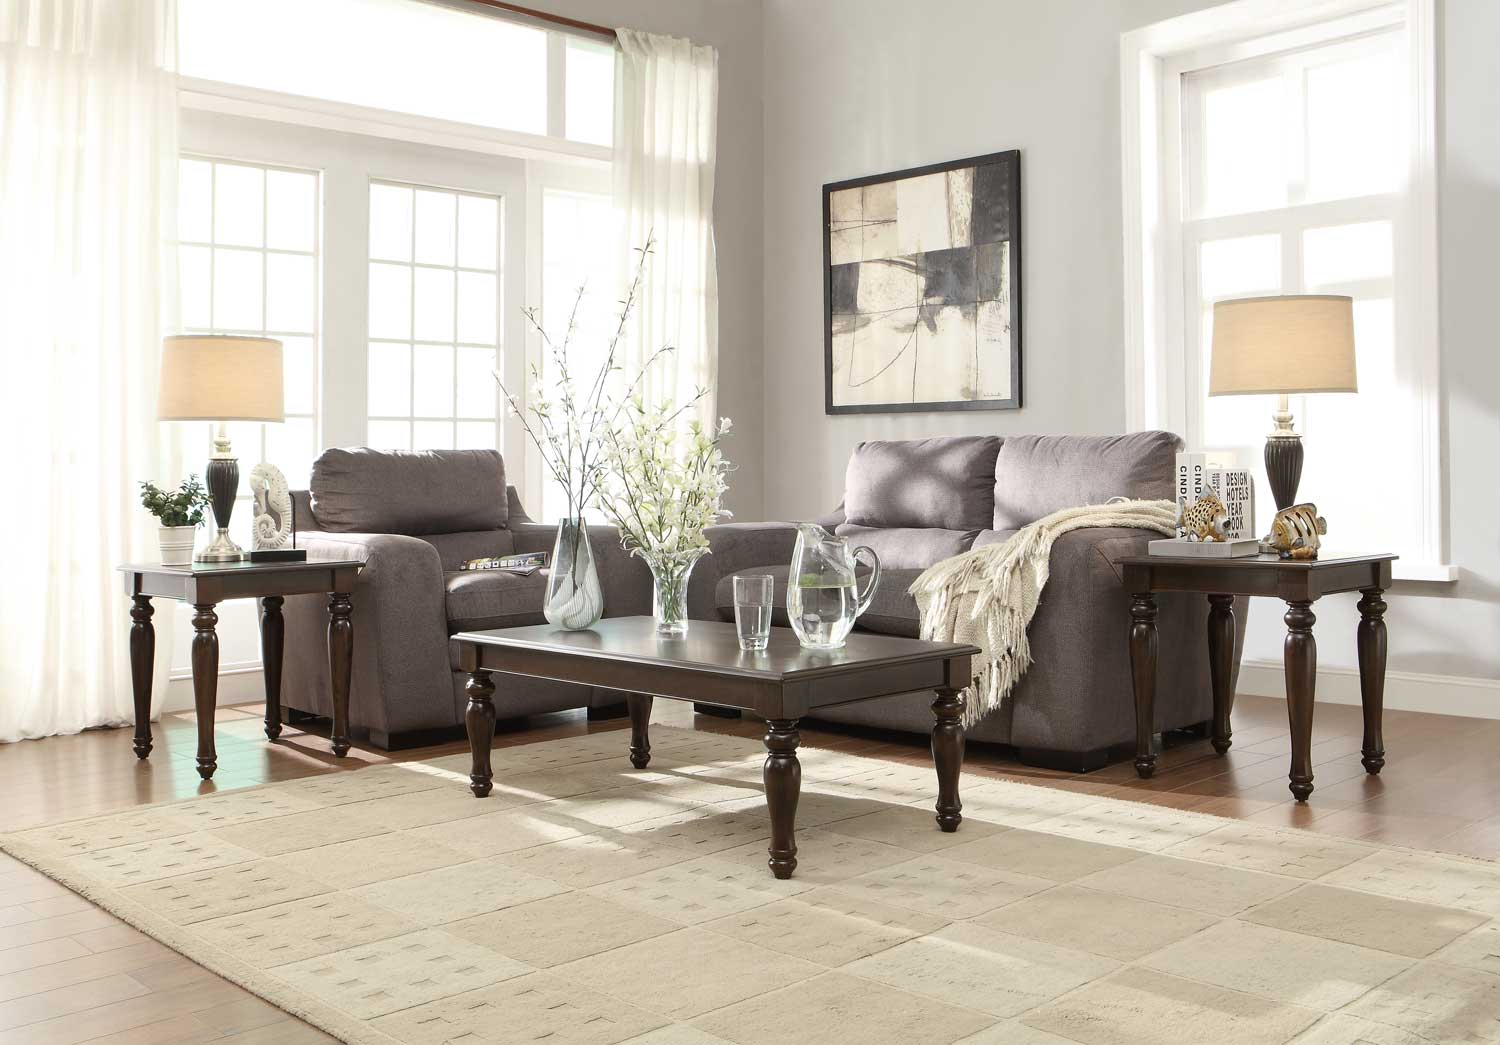 Homelegance Hebron 3-Piece Occasional Tables - Rich Brown Cherry